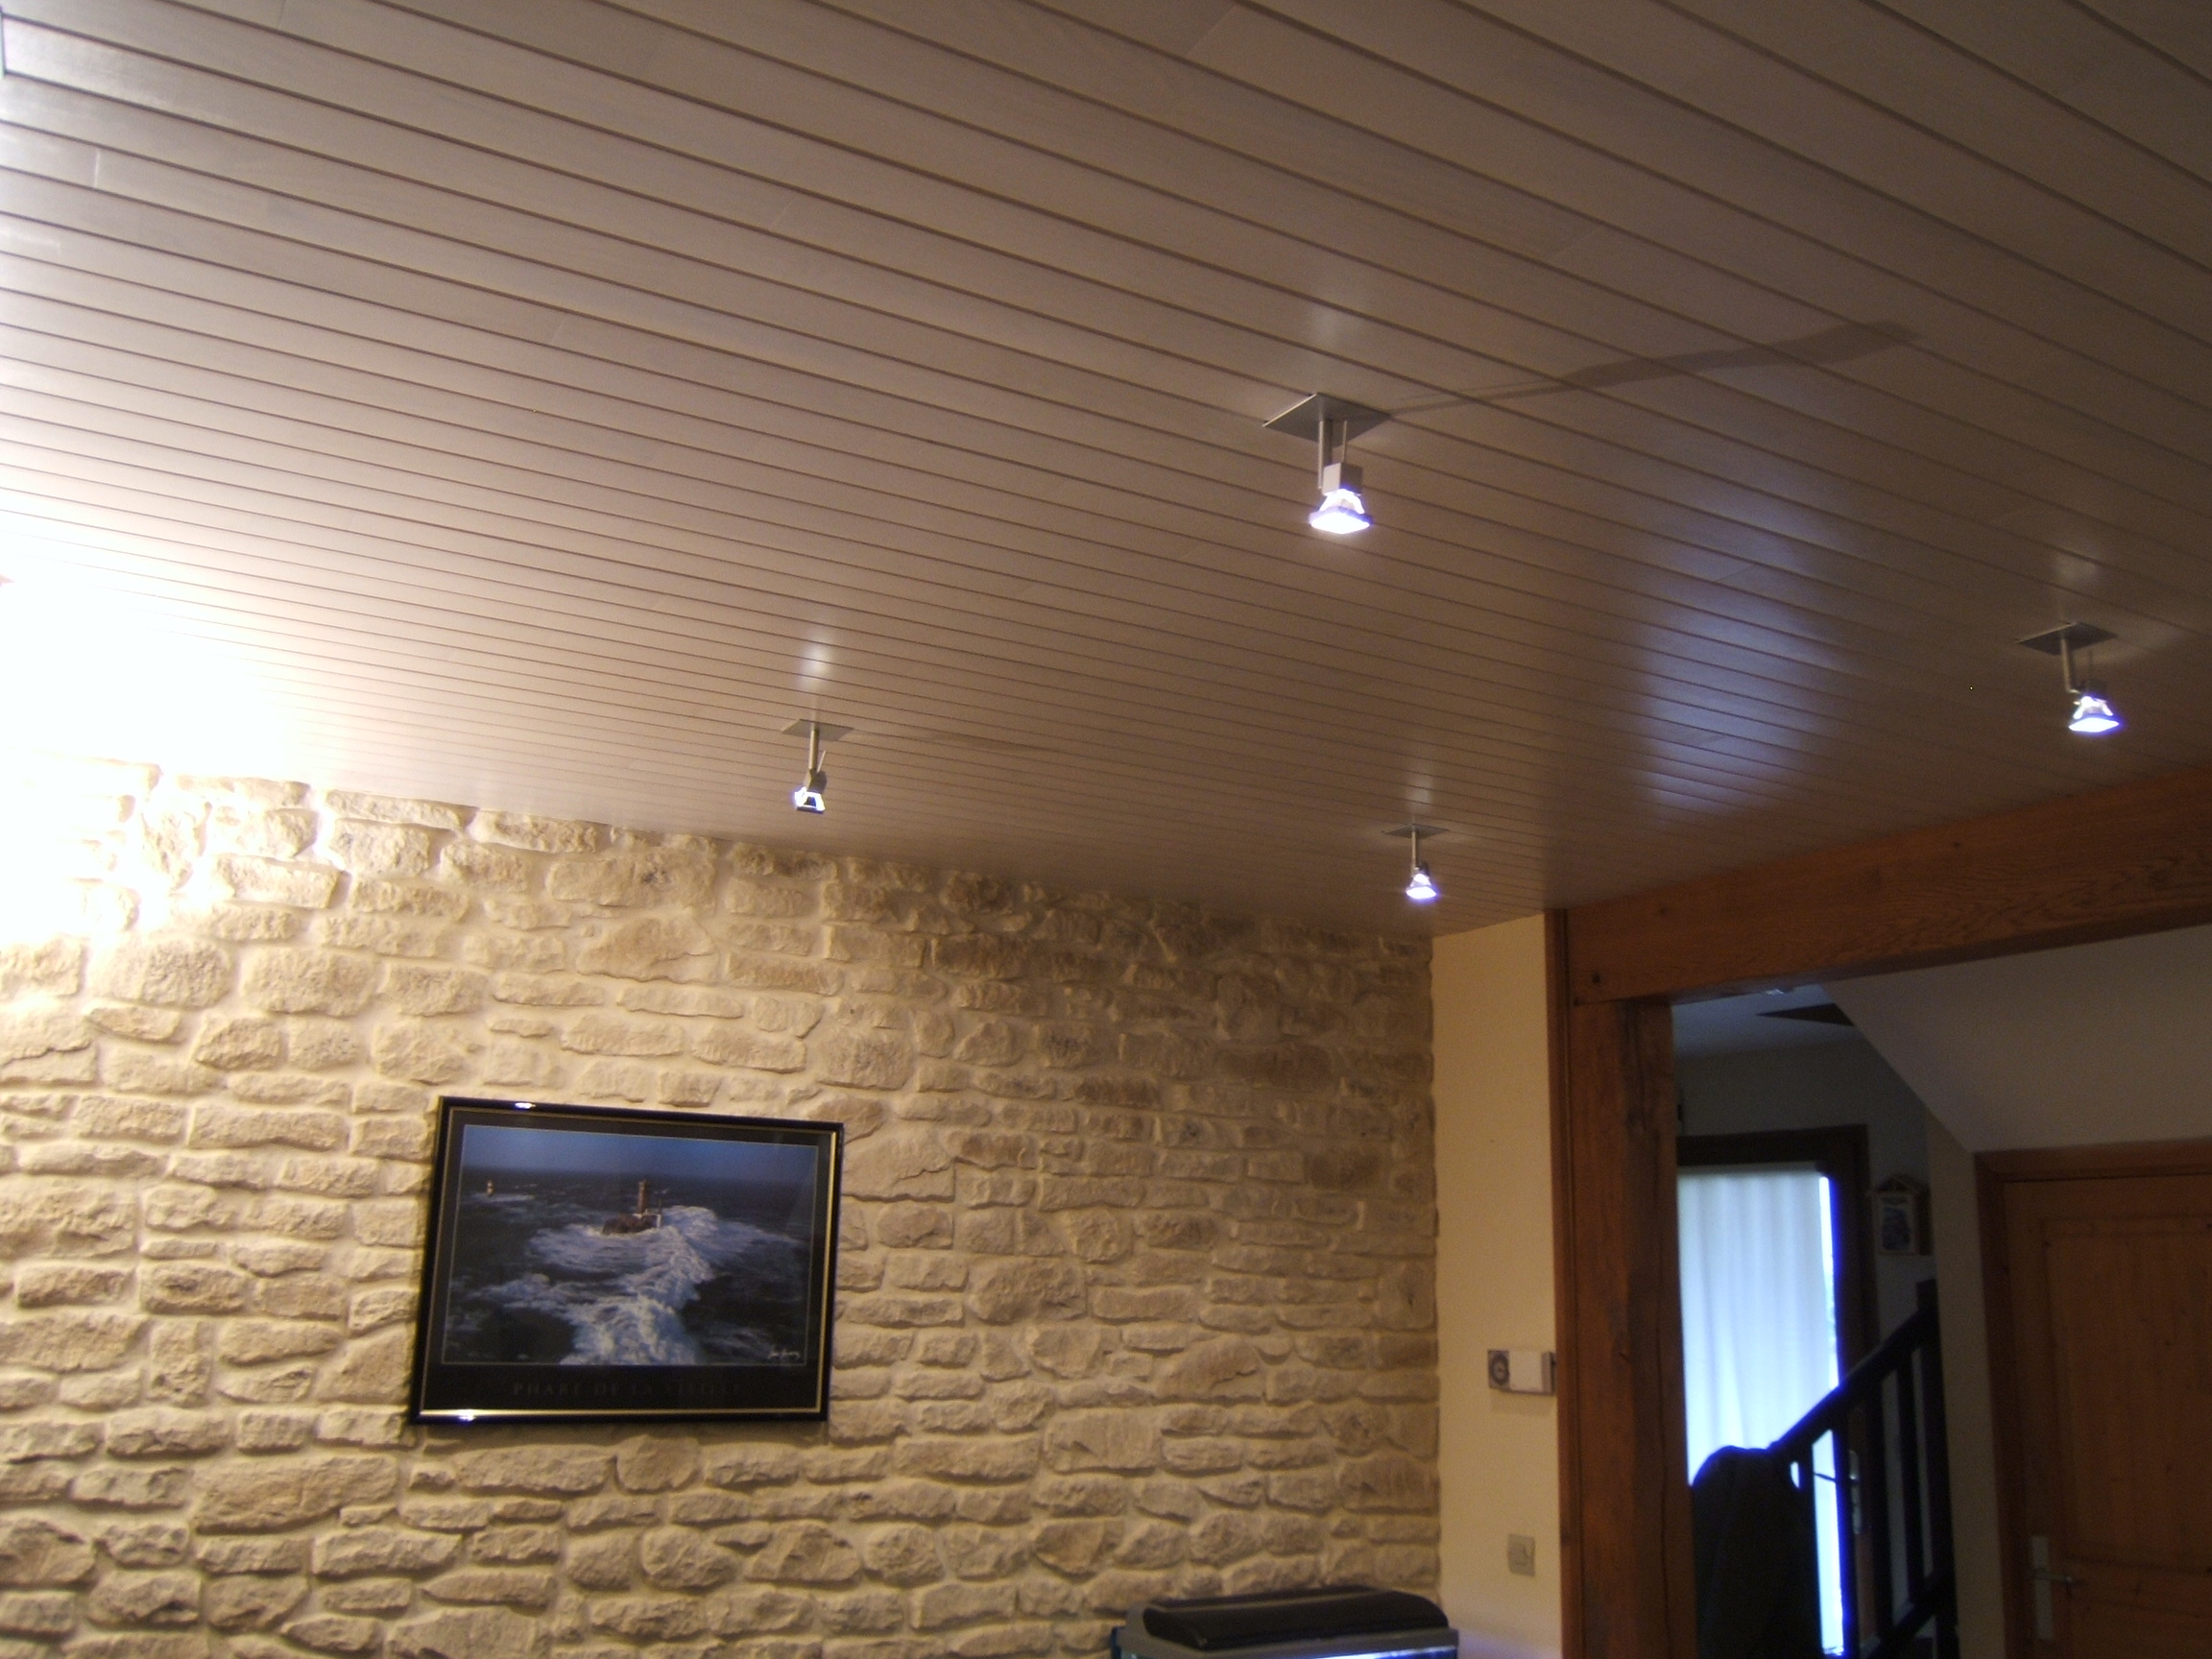 Lambris Plafond Bois Awesome Plafond En Lambris Plafond Bois En